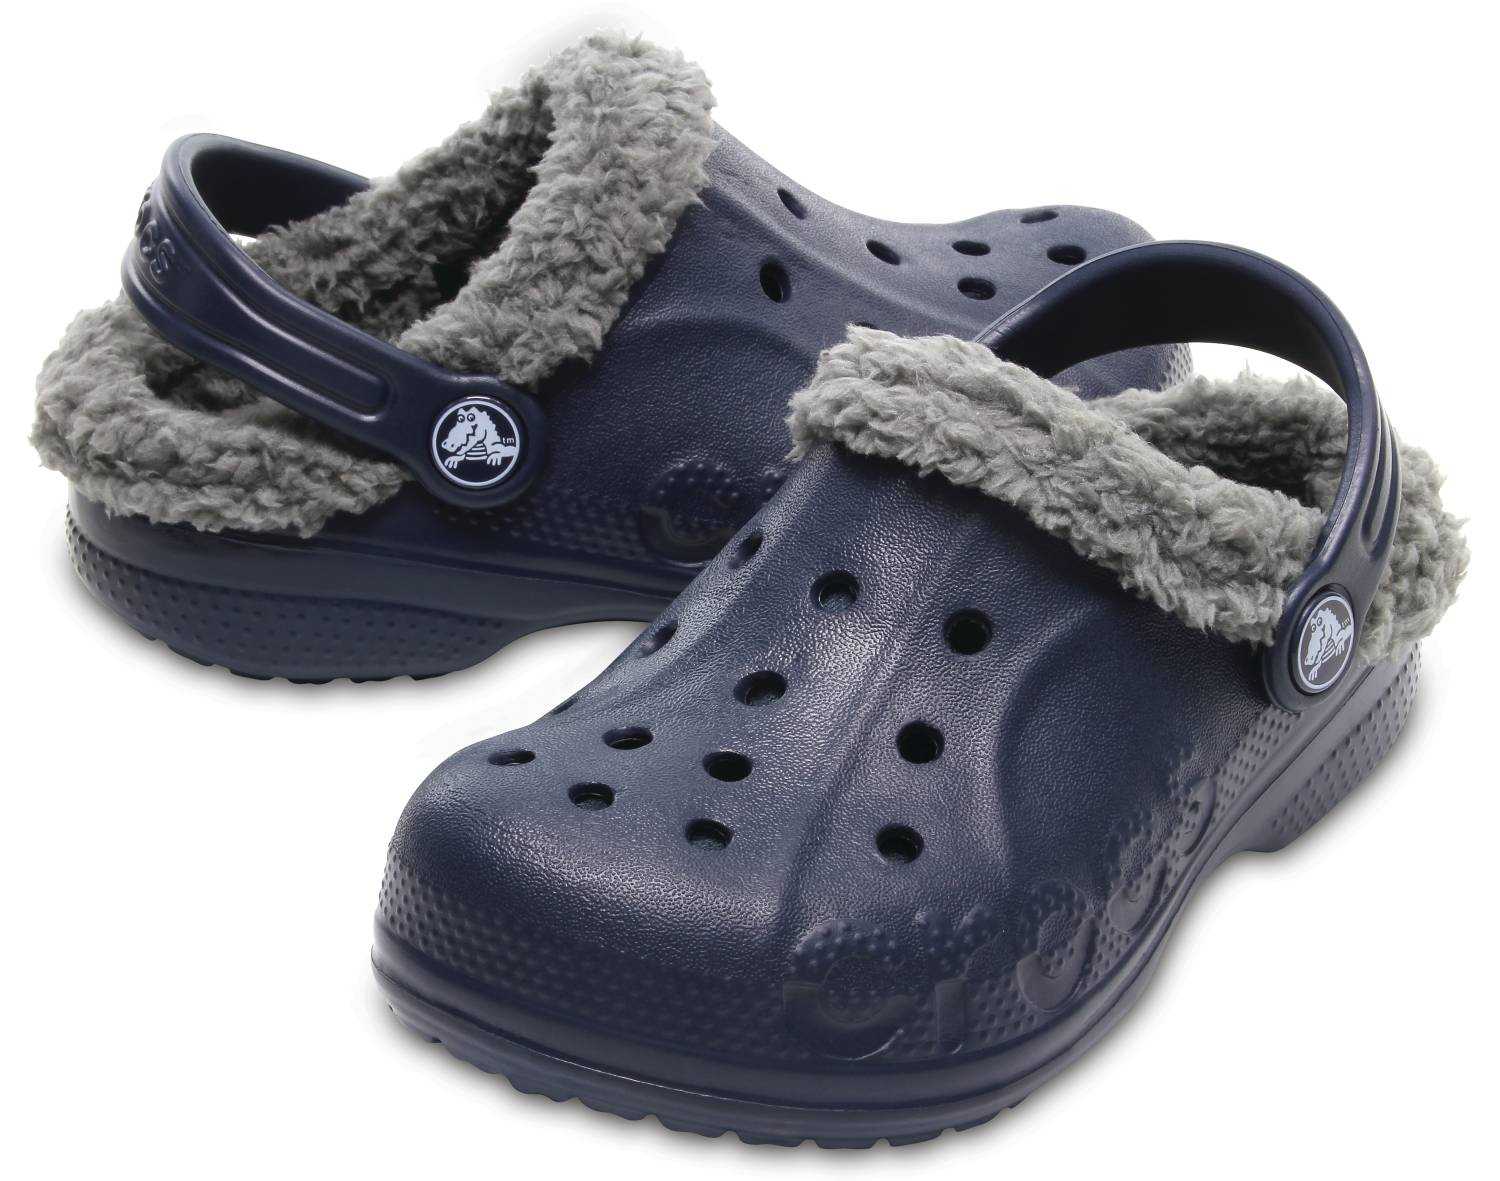 Crocs Bay Lined Kids blau grau navy smoke Clogs Hausschuhe Gartenschuhe Kinder